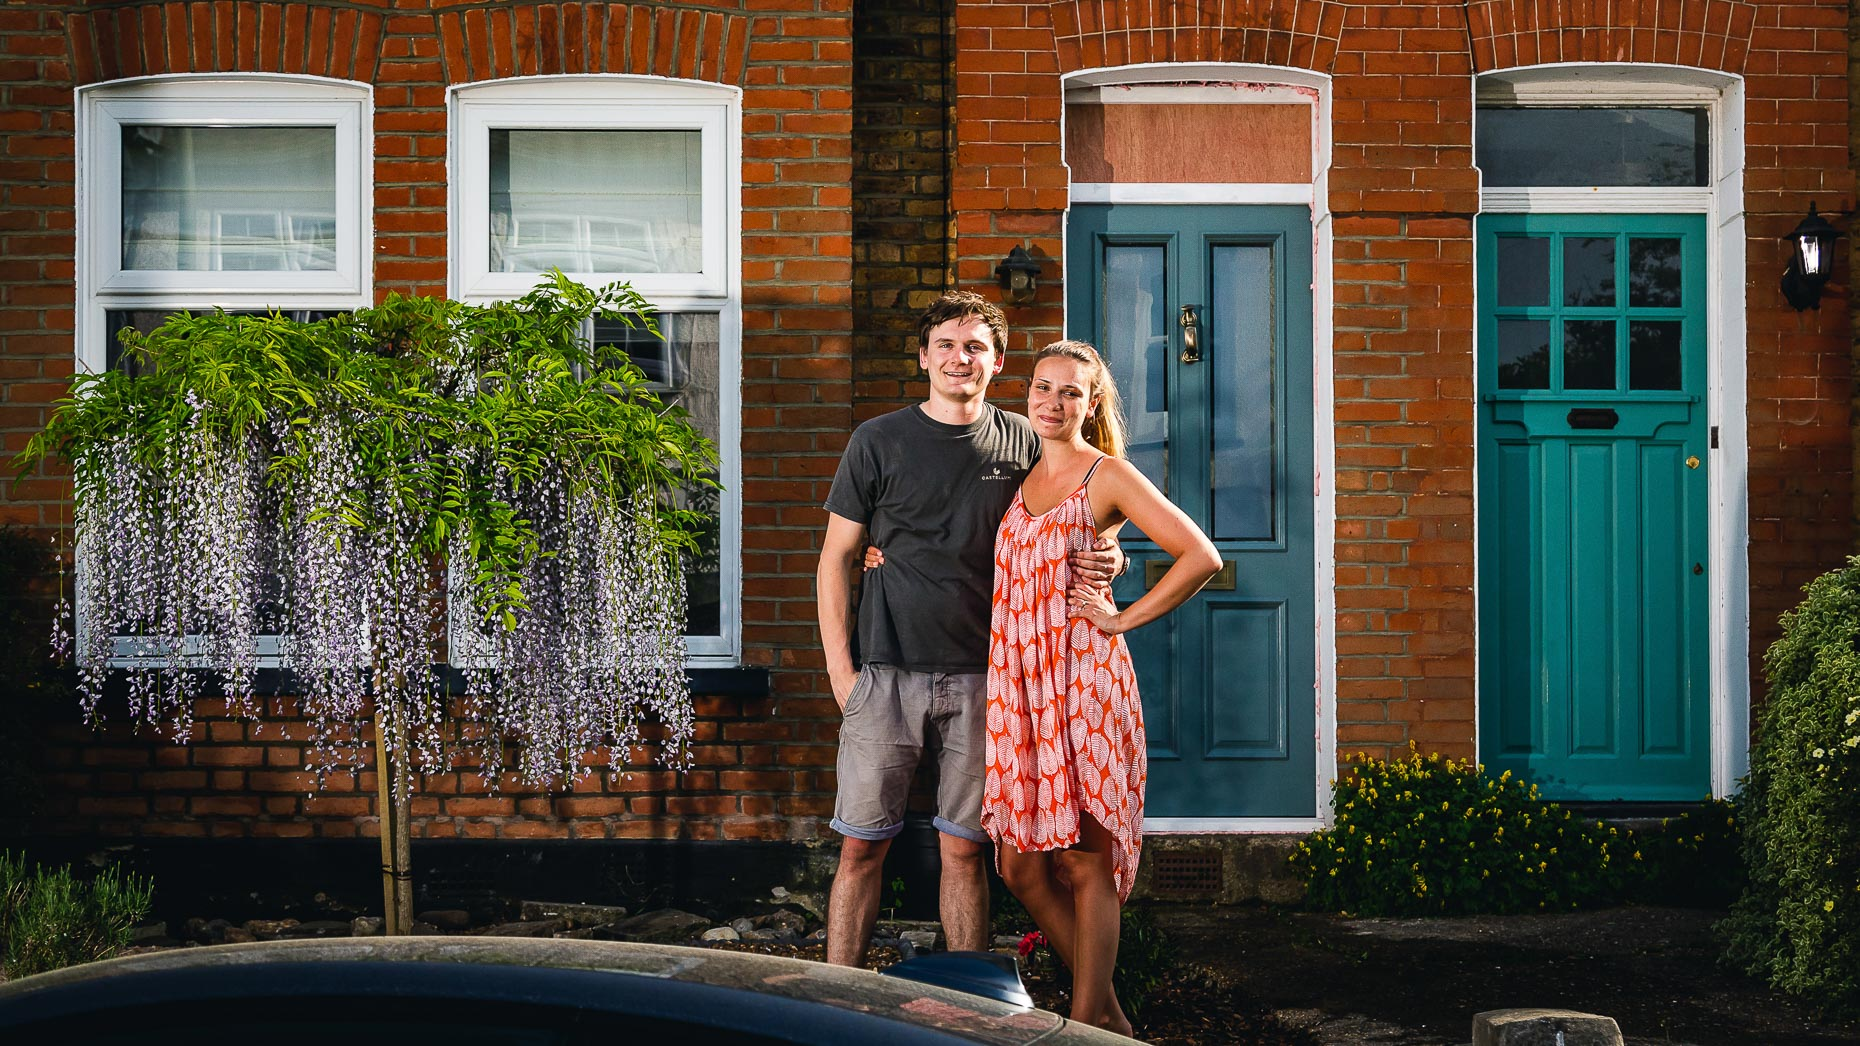 Ashtead Doorstep Portraits 29